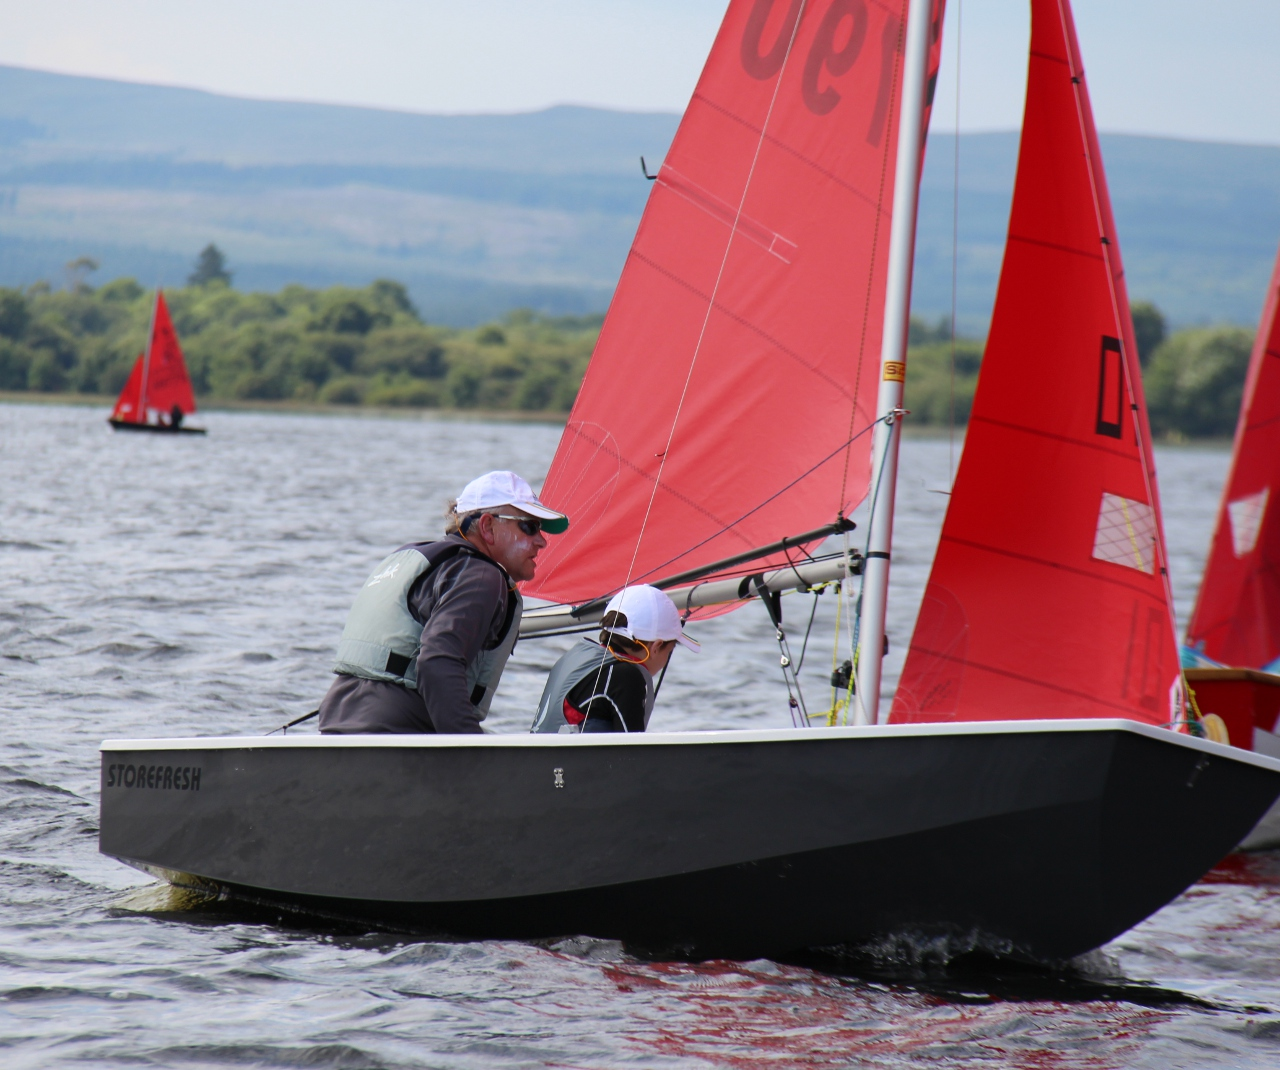 Grey GRP Mirror dinghy sailing on Lough Derg in southern Ireland